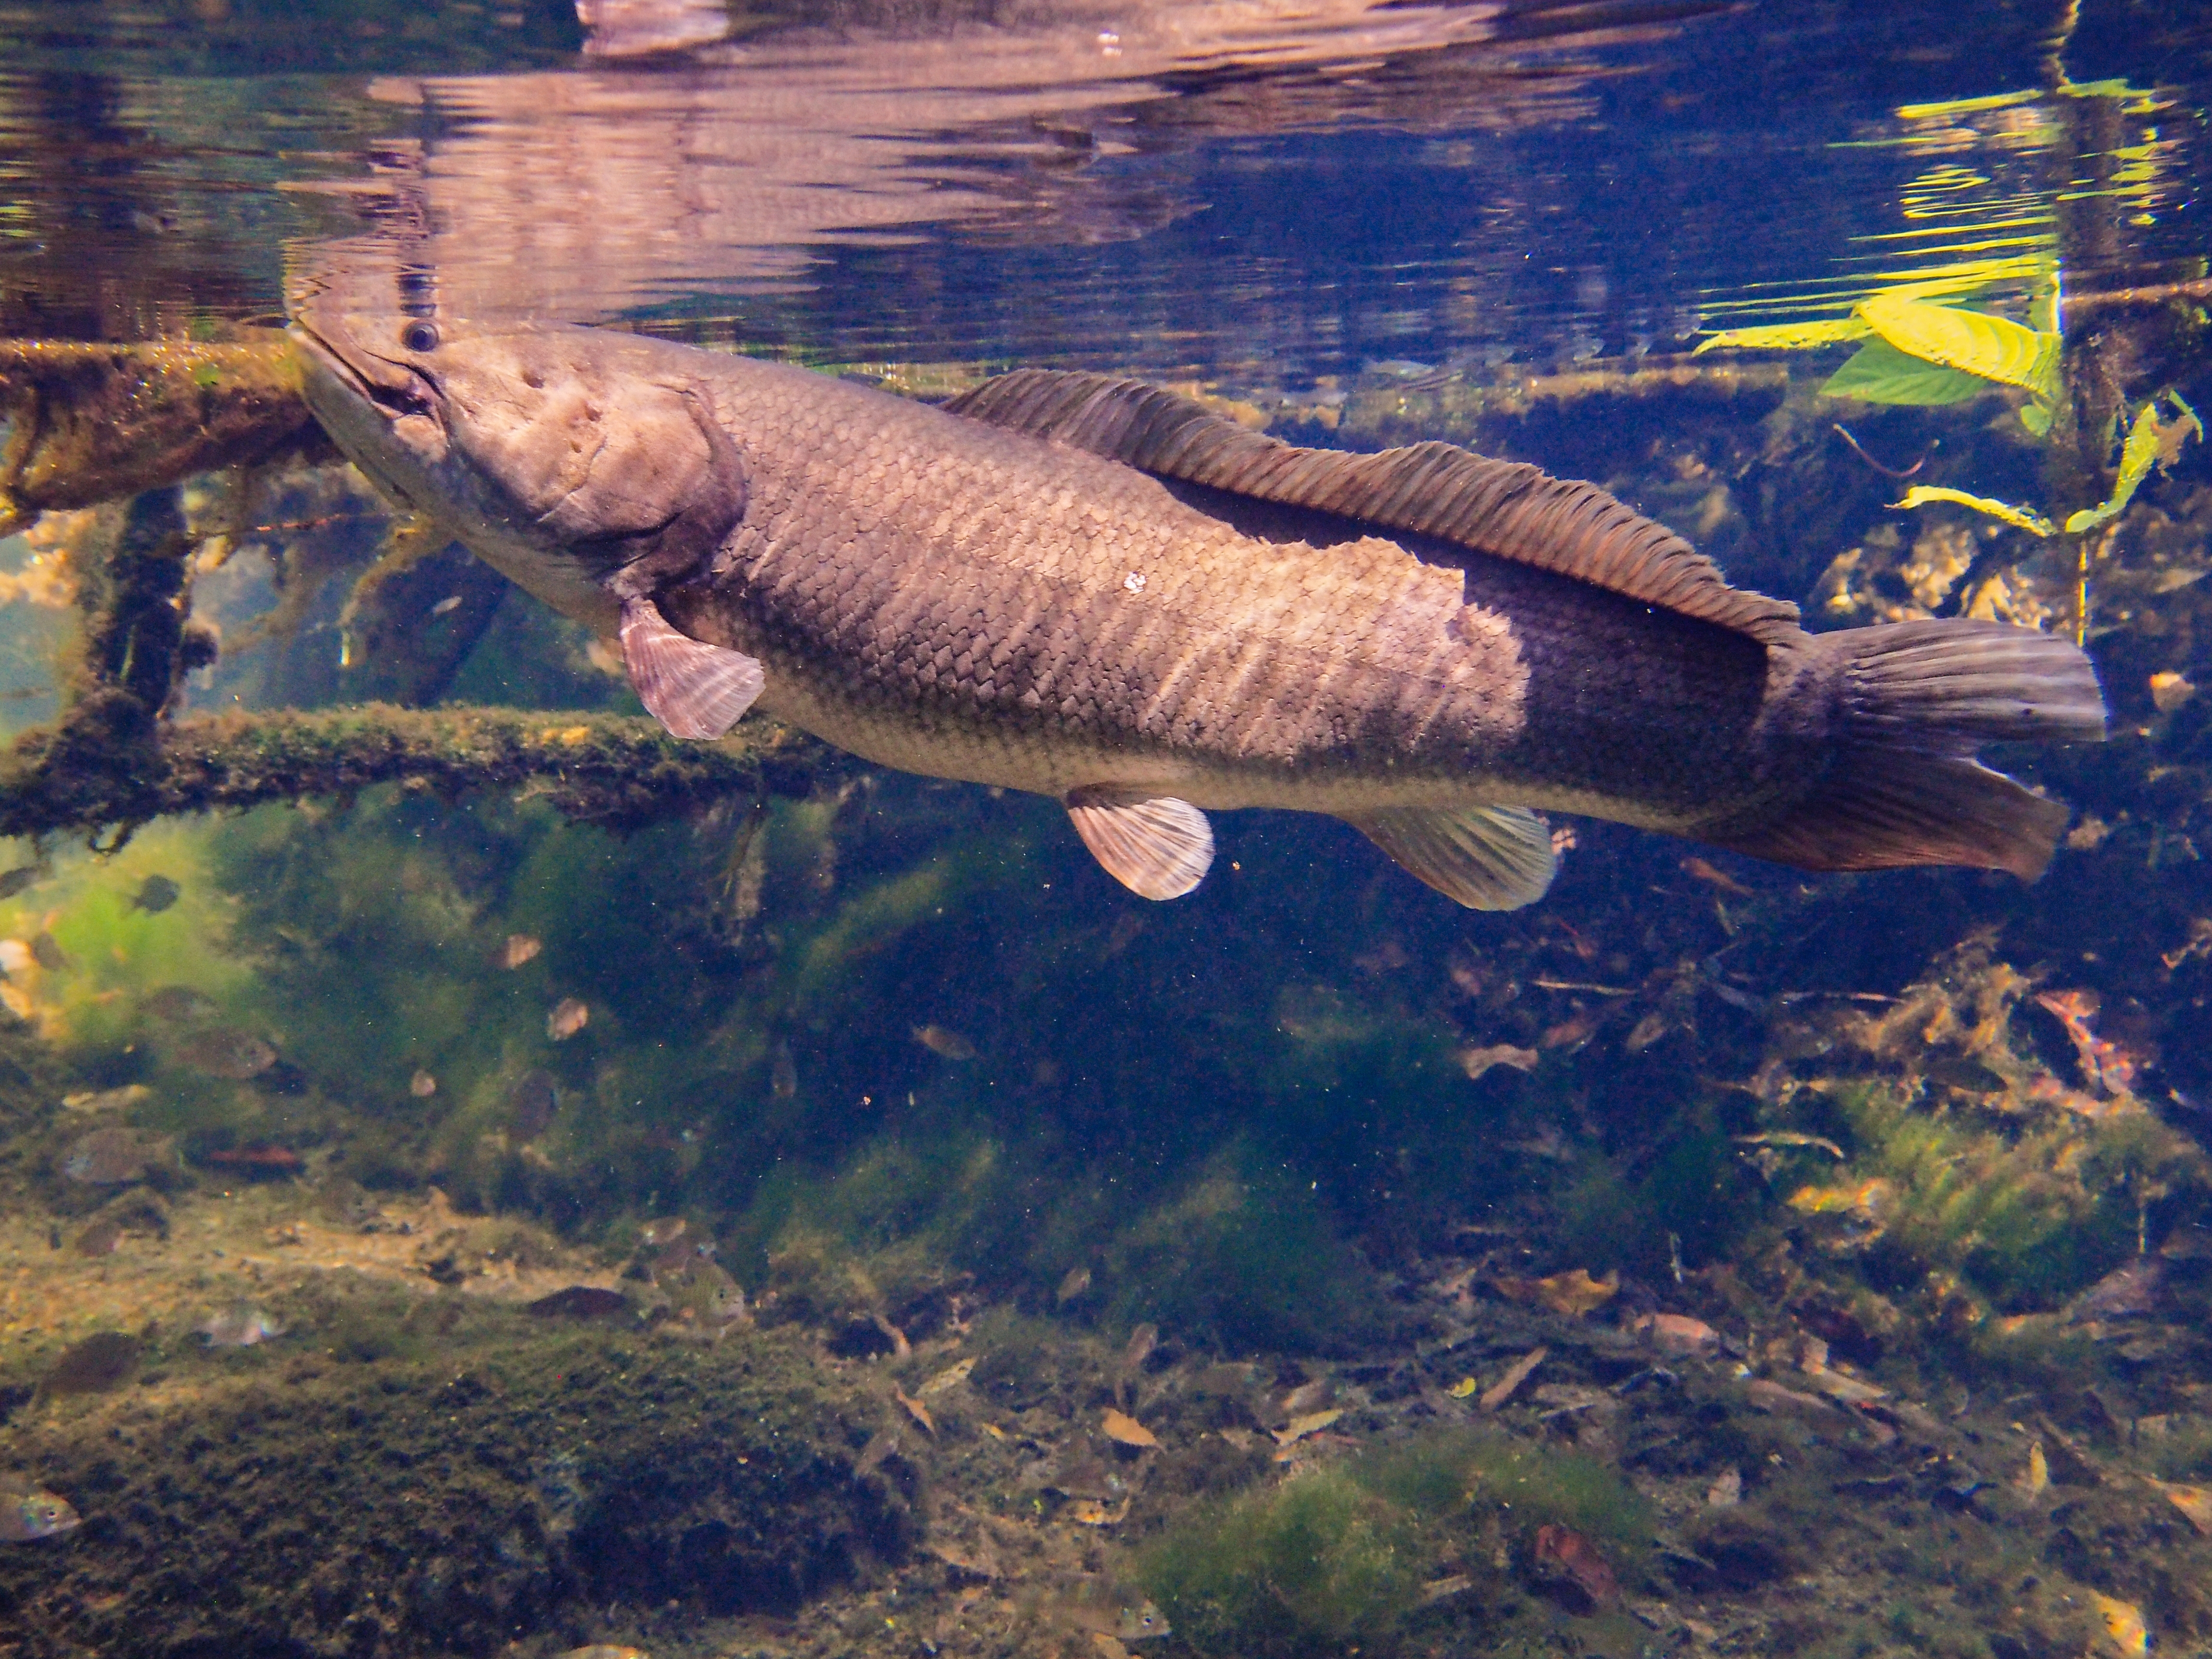 Image of Bowfin